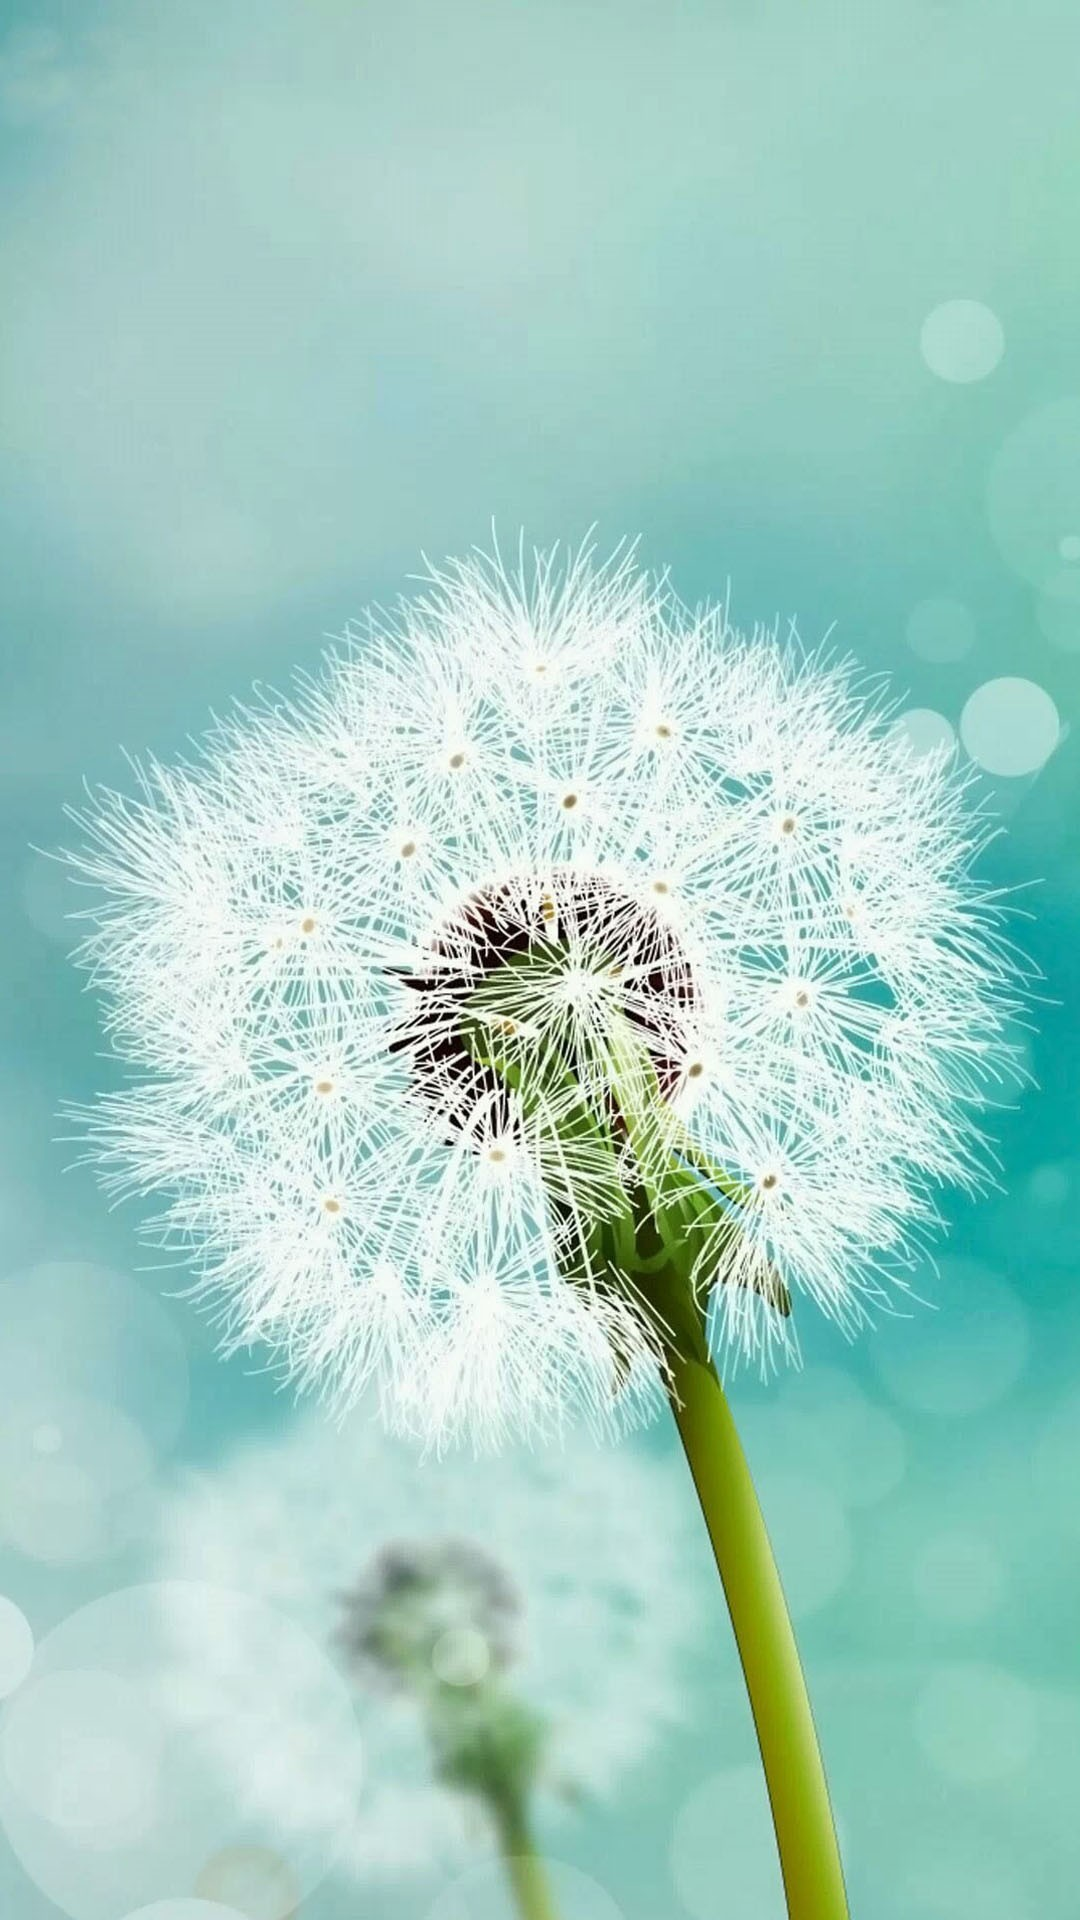 samsung dandelion wallpaper wallpapersafari